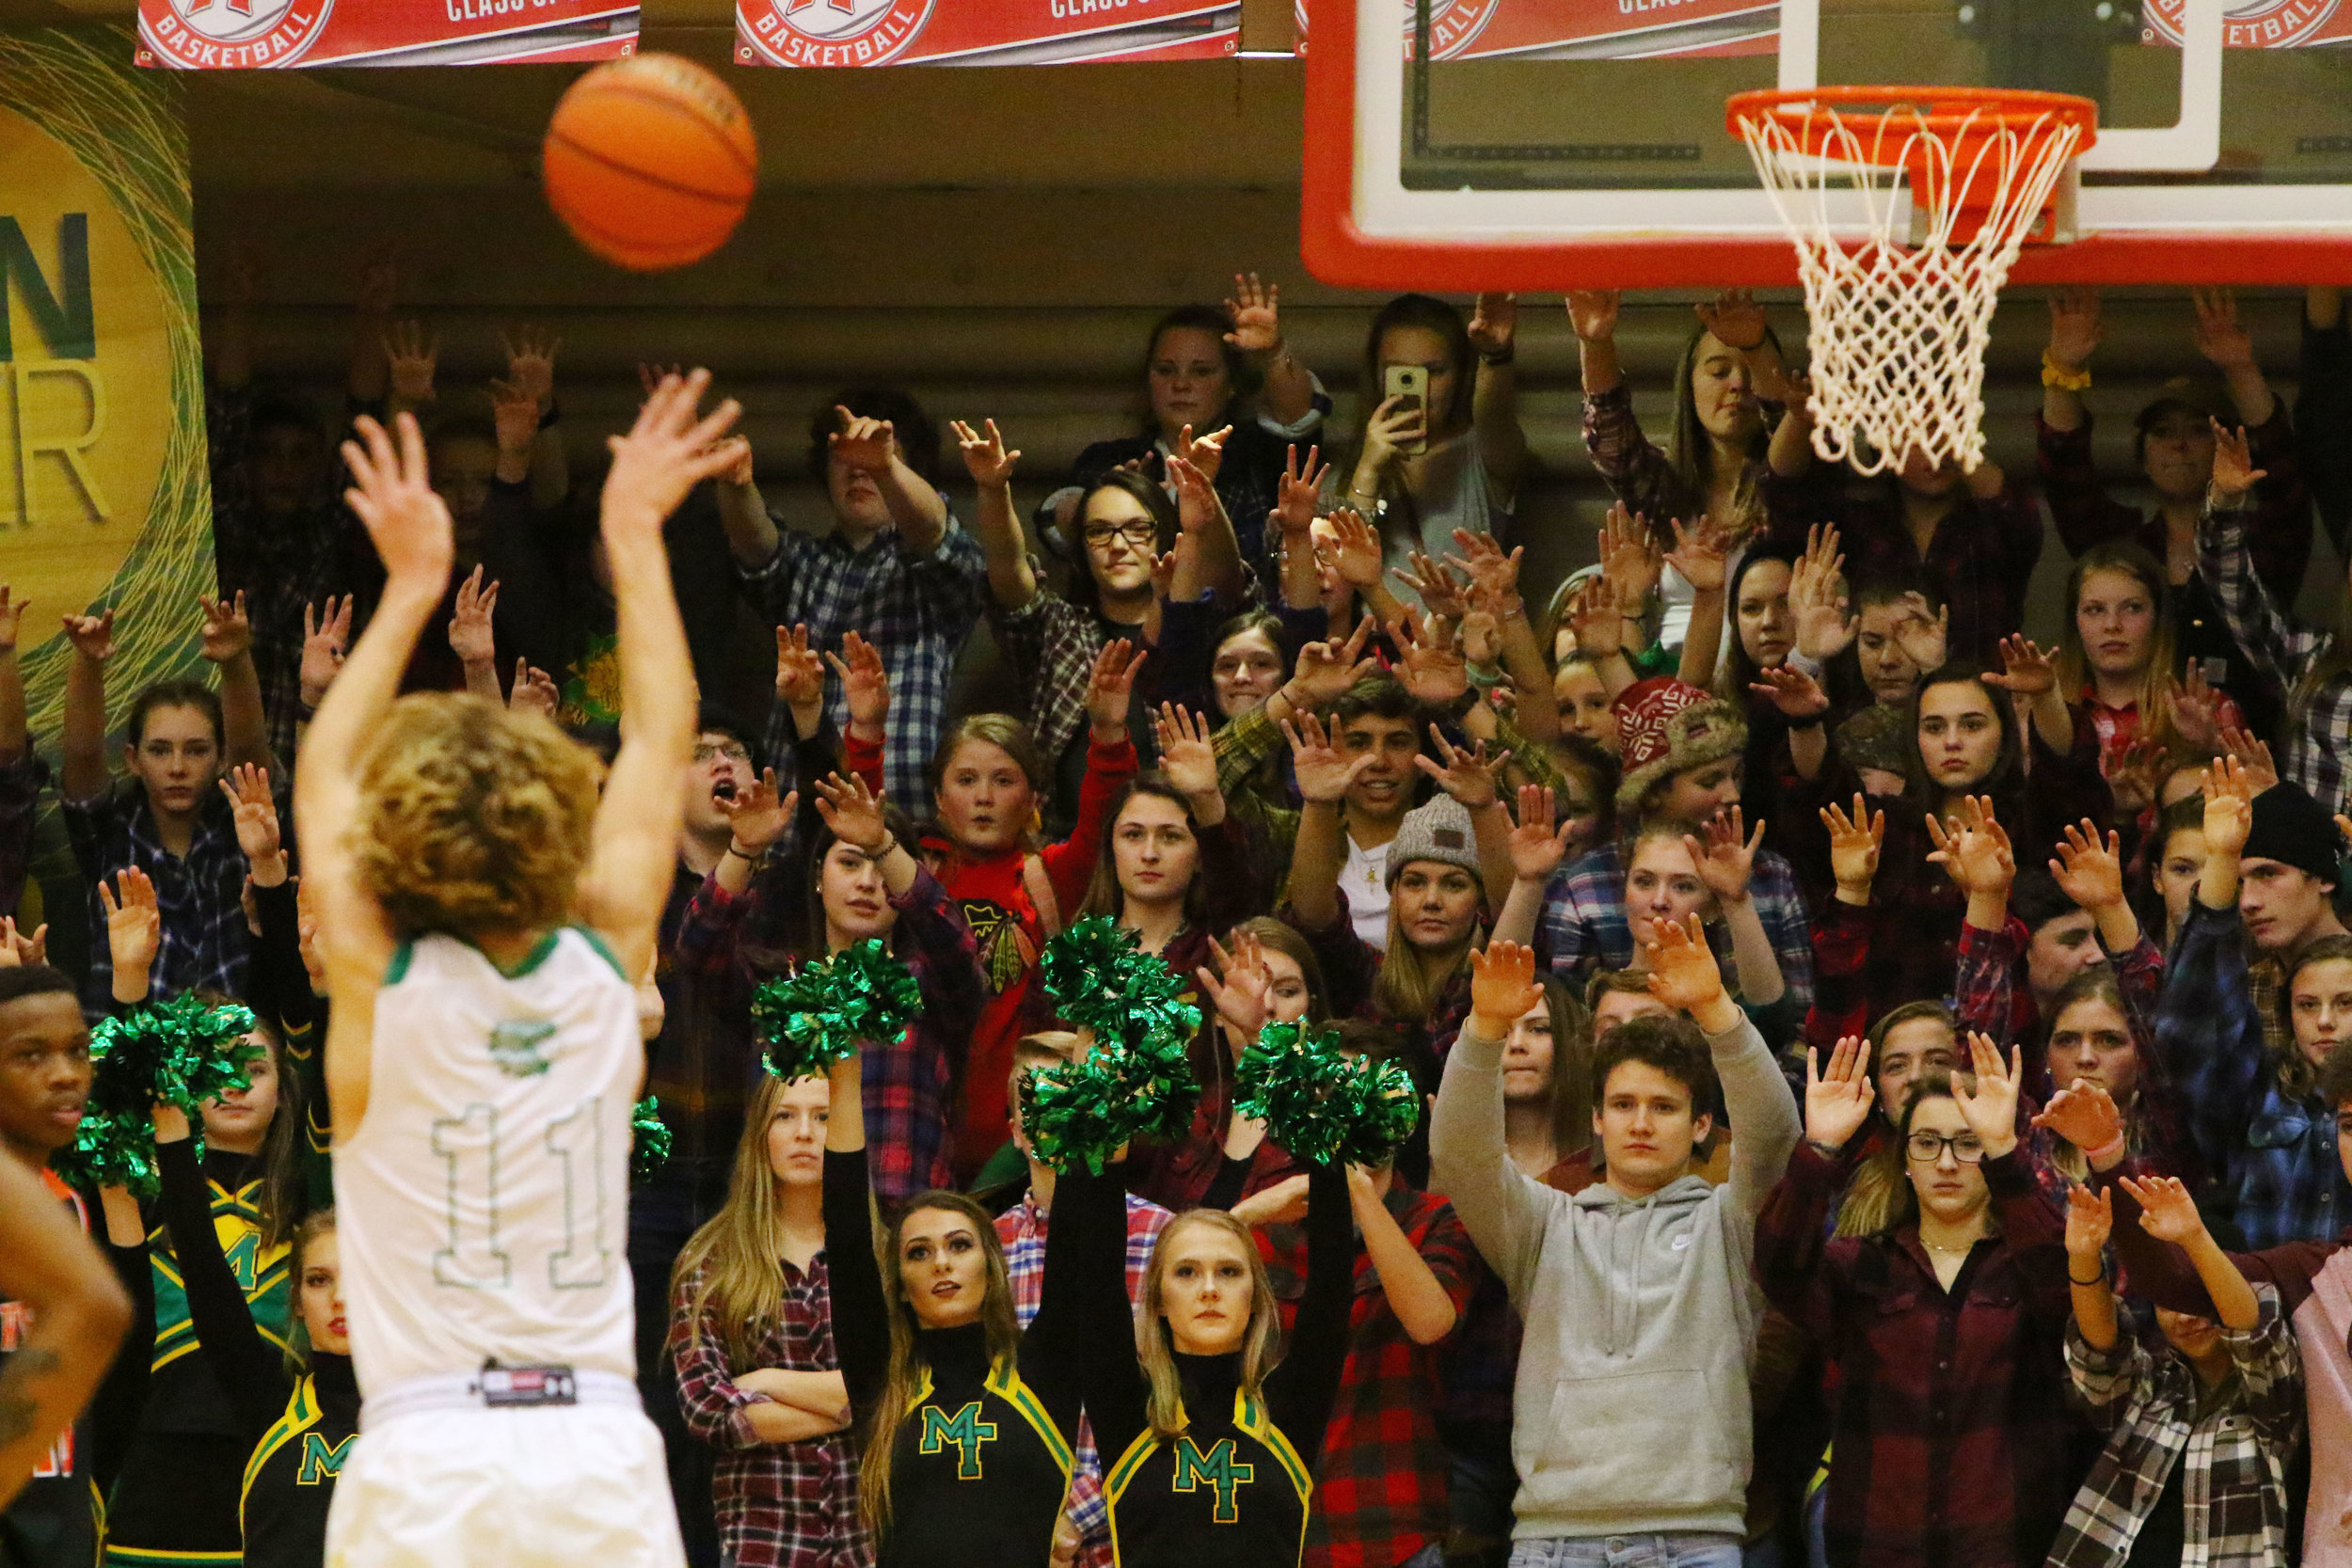 Morgan Township fans raise their hands as Trevor Braden knocks down a free throw during the Porter County Conference Tournament finals in Hebron.